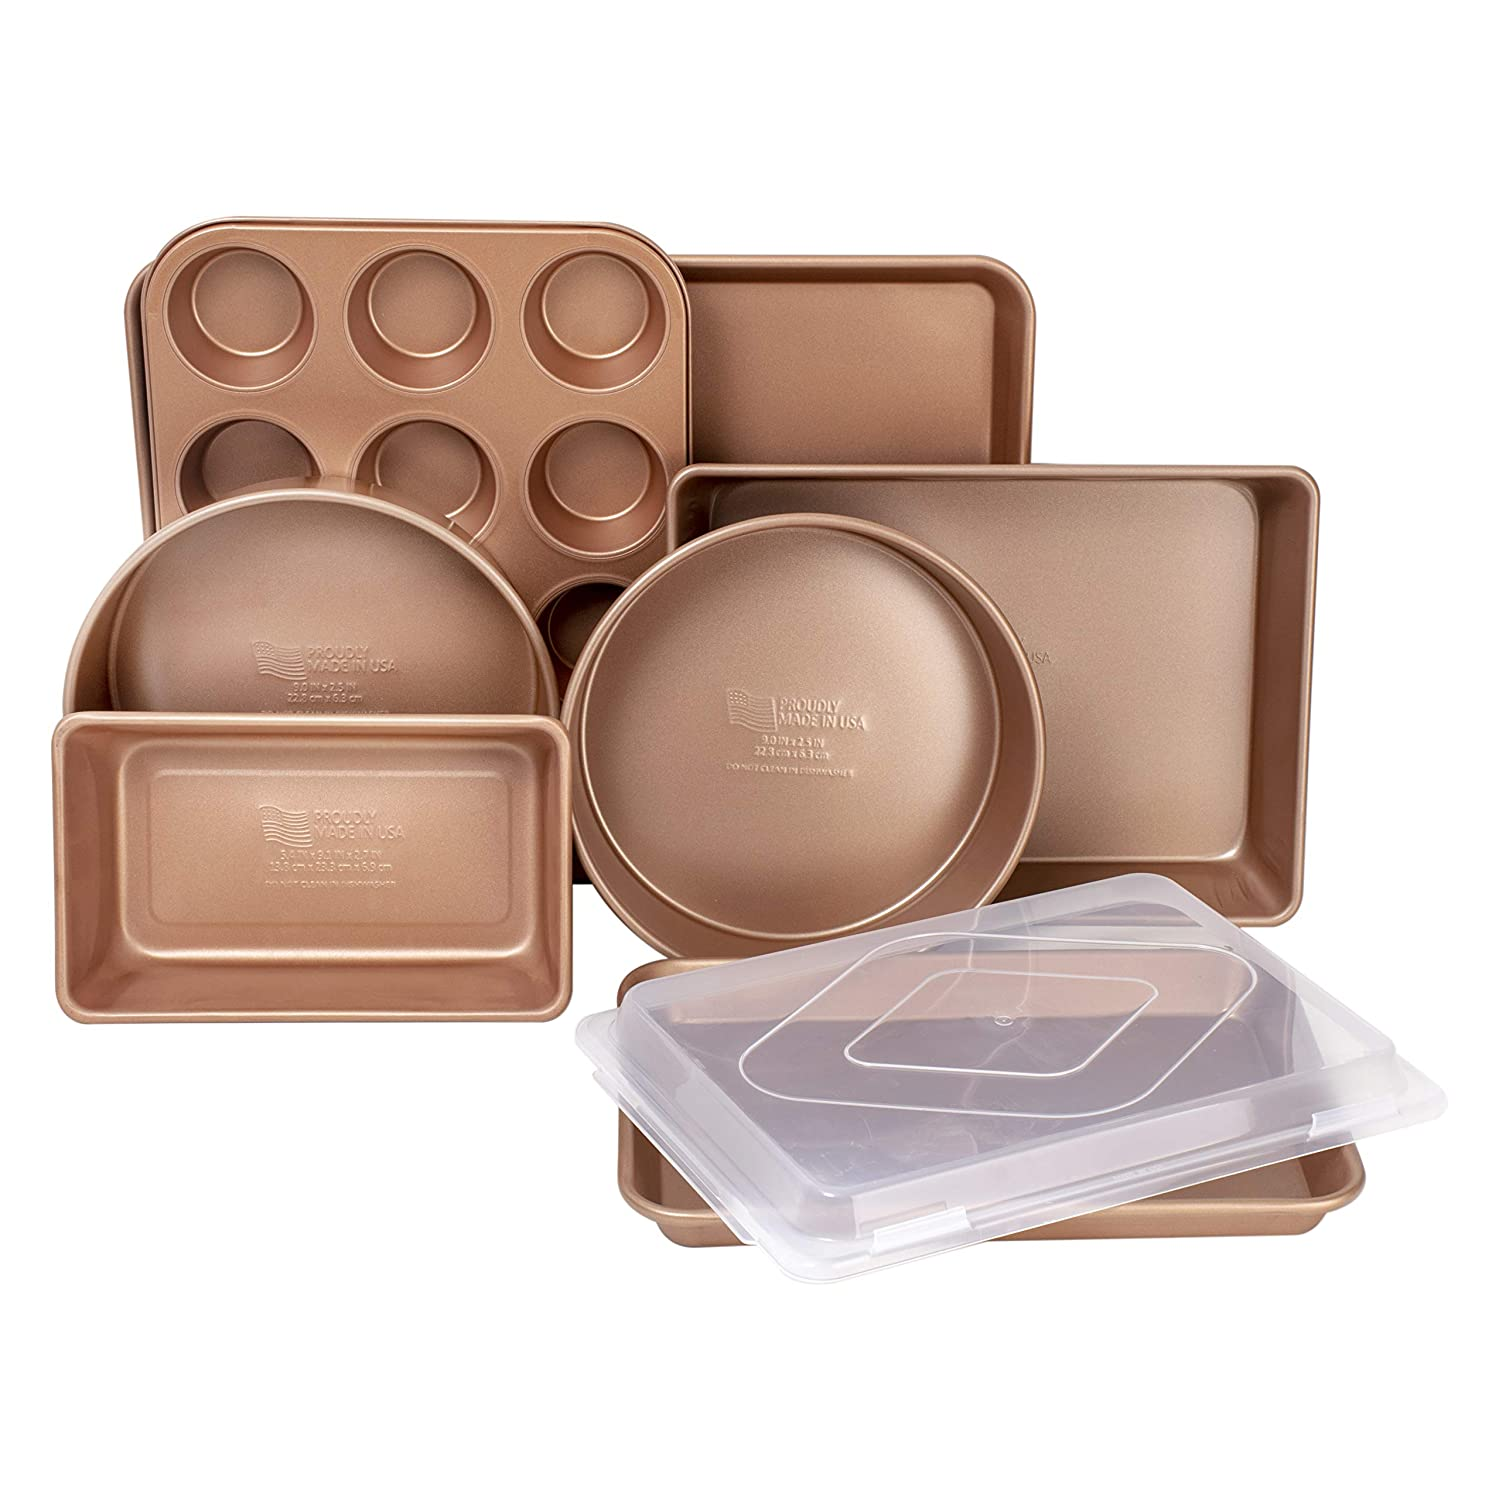 Family Traditions FT8PC Copper Non-Stick 8-Piece Bakeware Set-Includes Commercial Weight Cake, Sheet, Loaf, Muffin, Bake & Roast Pan, an, Large